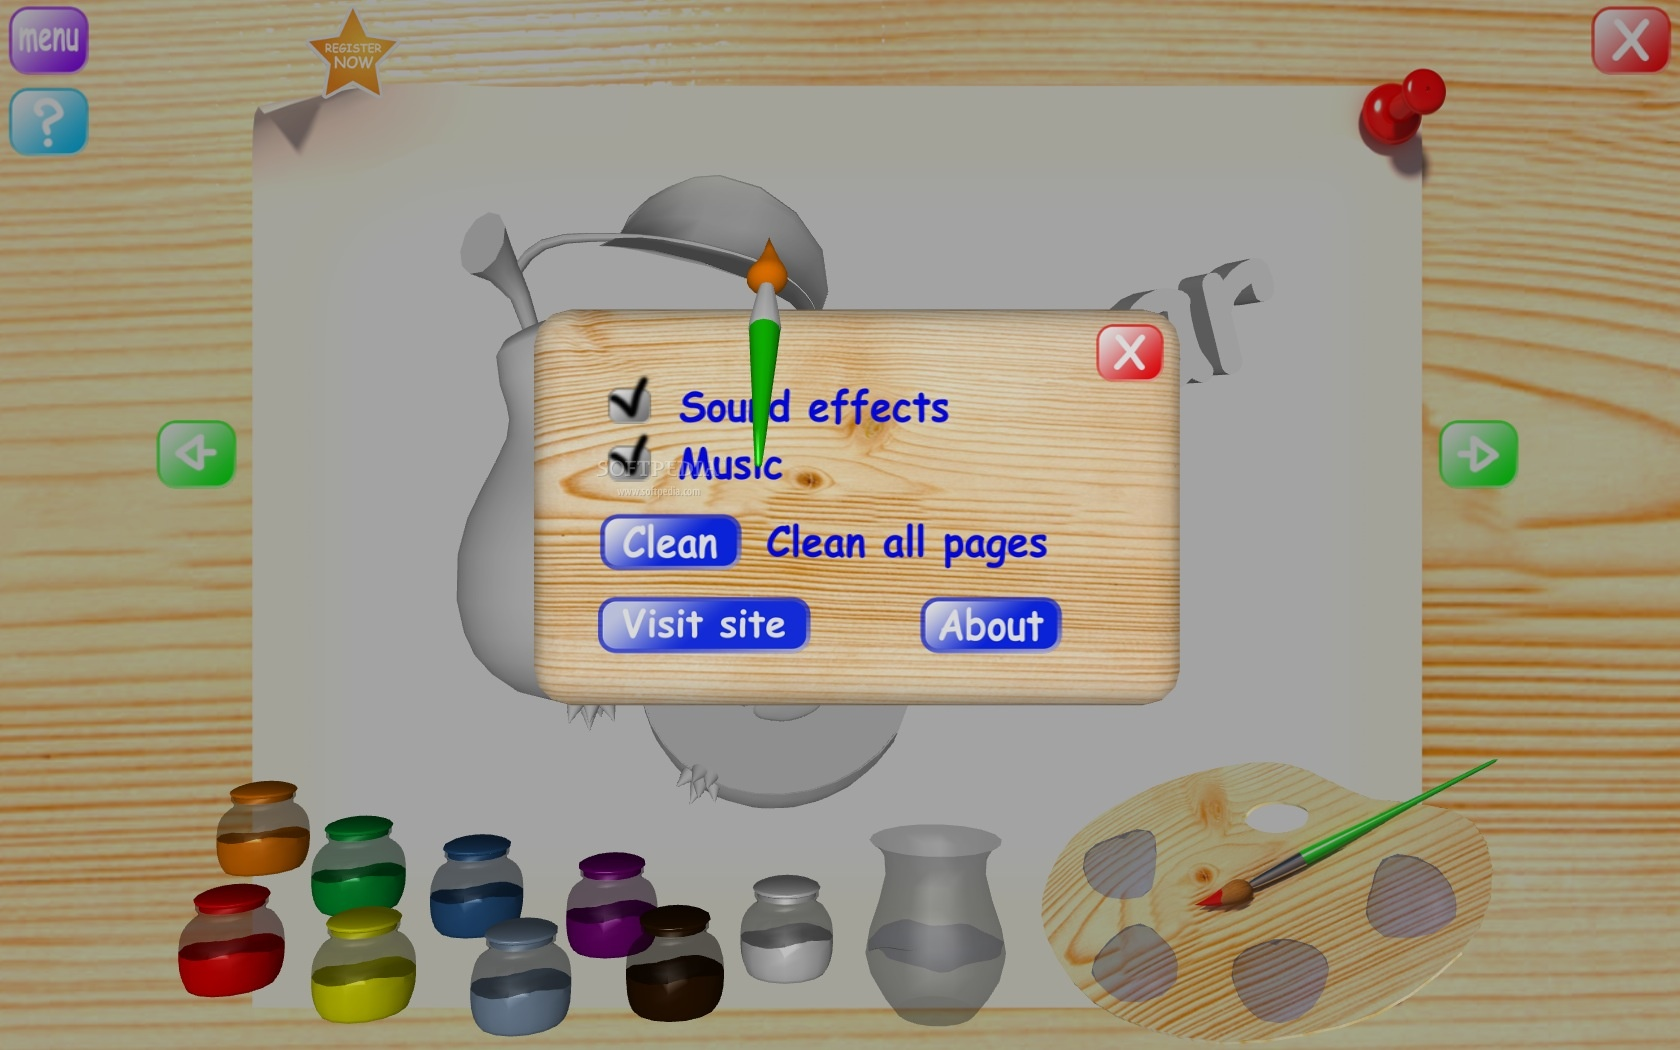 Fruits Coloring Book screenshot 3 - In the Options window you can enable or disable sound effects as well as music.